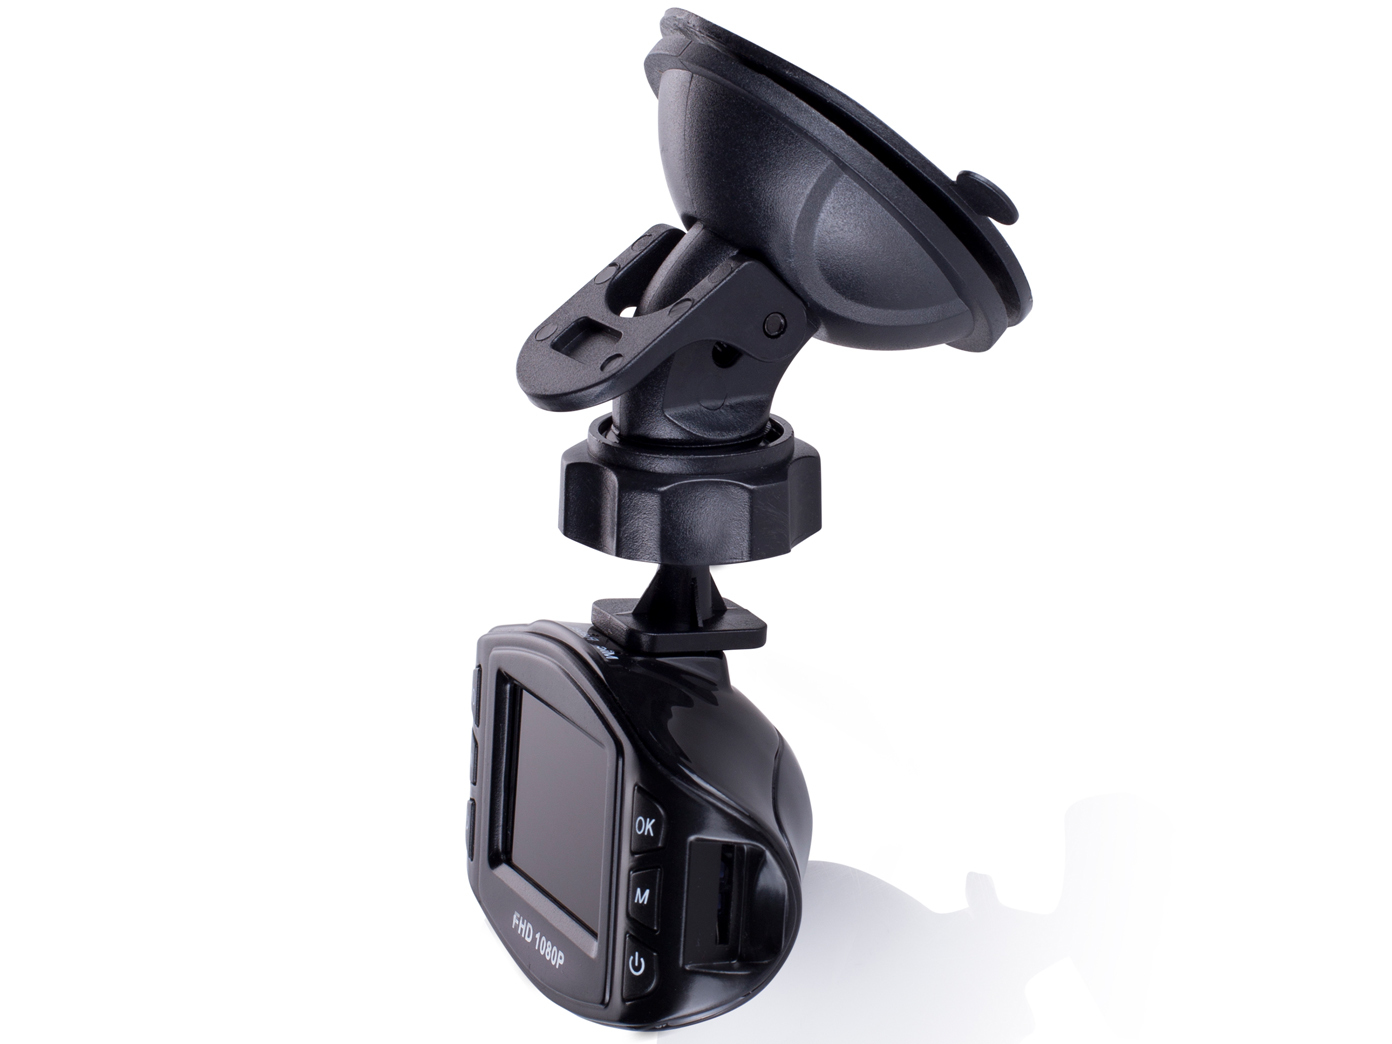 dashcam mit akku berwachungskamera f rs im auto frontkamera dashcams daschcam ebay. Black Bedroom Furniture Sets. Home Design Ideas